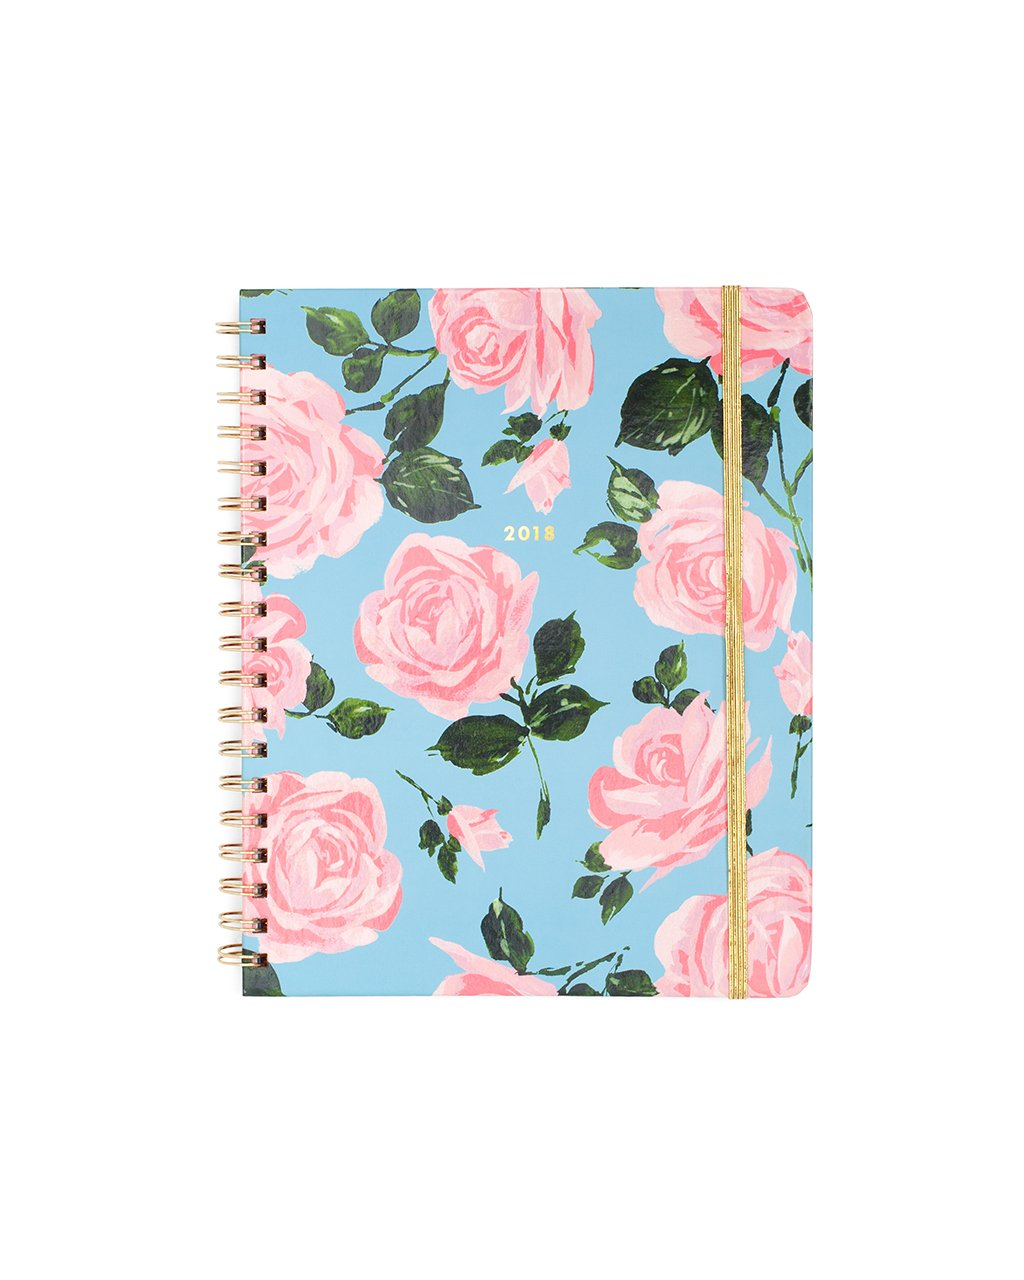 the planner - A shockingly useful everyday tool.